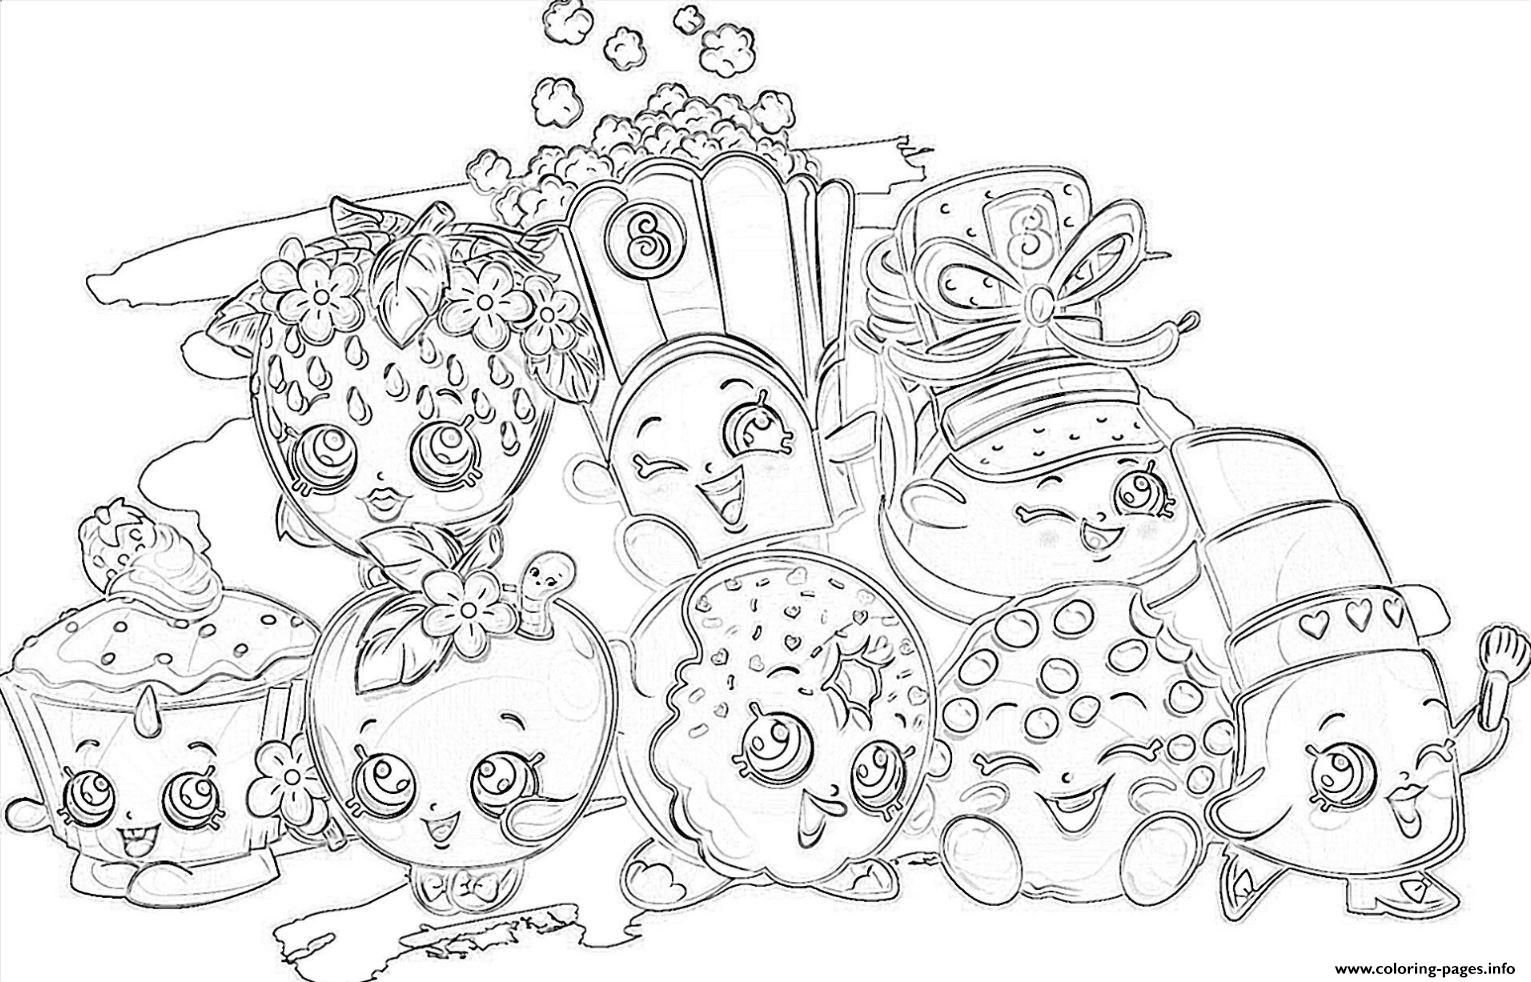 Print Shopkins All The Family Coloring Pages Family Coloring Pages Cute Coloring Pages Shopkins Colouring Pages